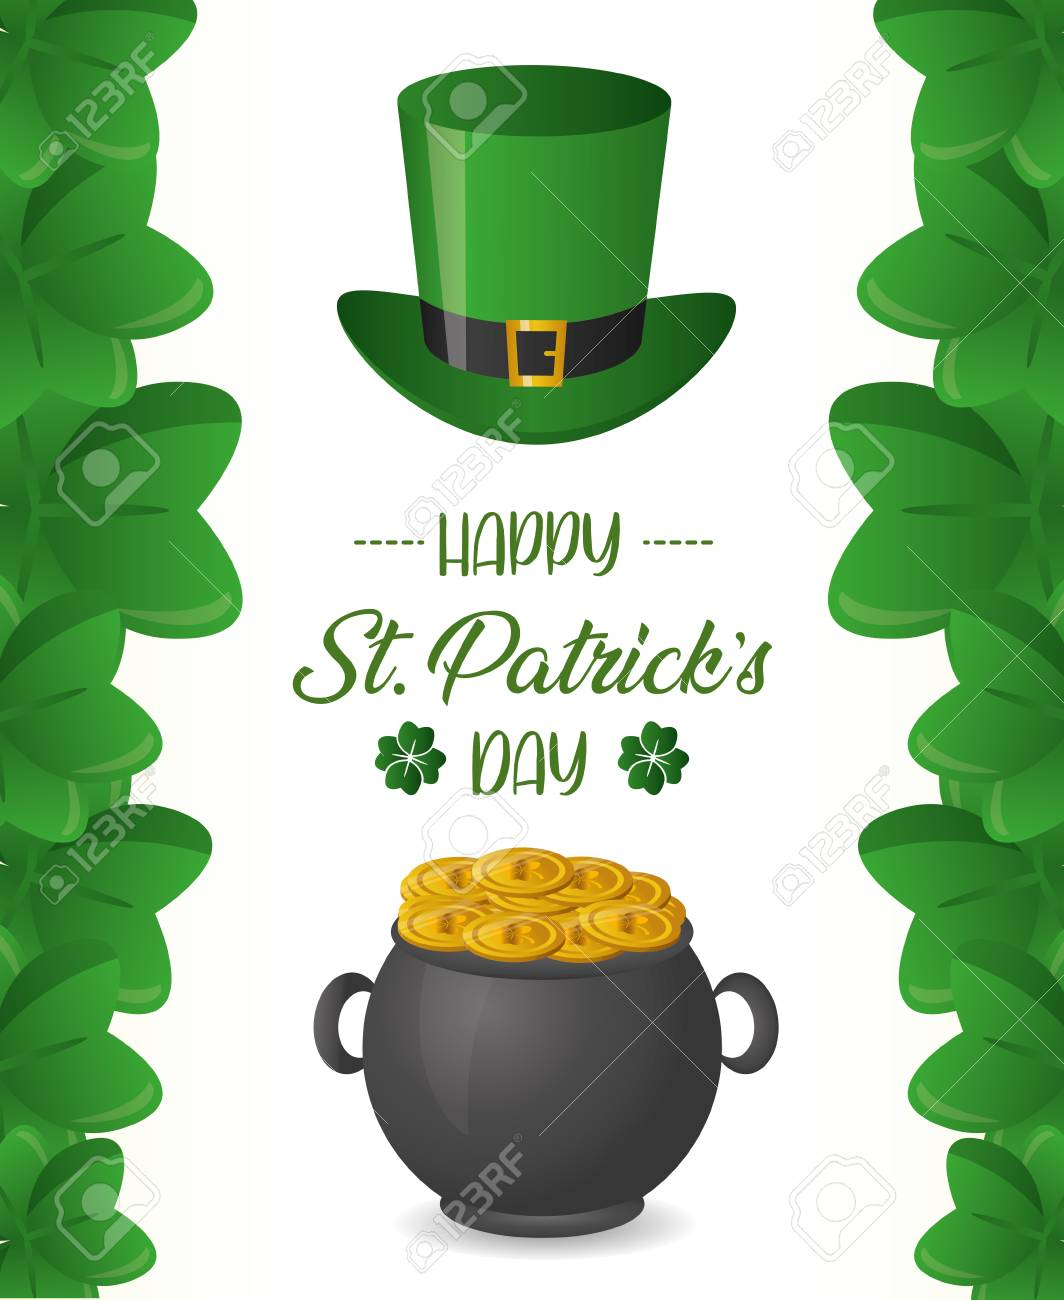 cauldron coins and hat happy st patricks day vector illustration - 125593398